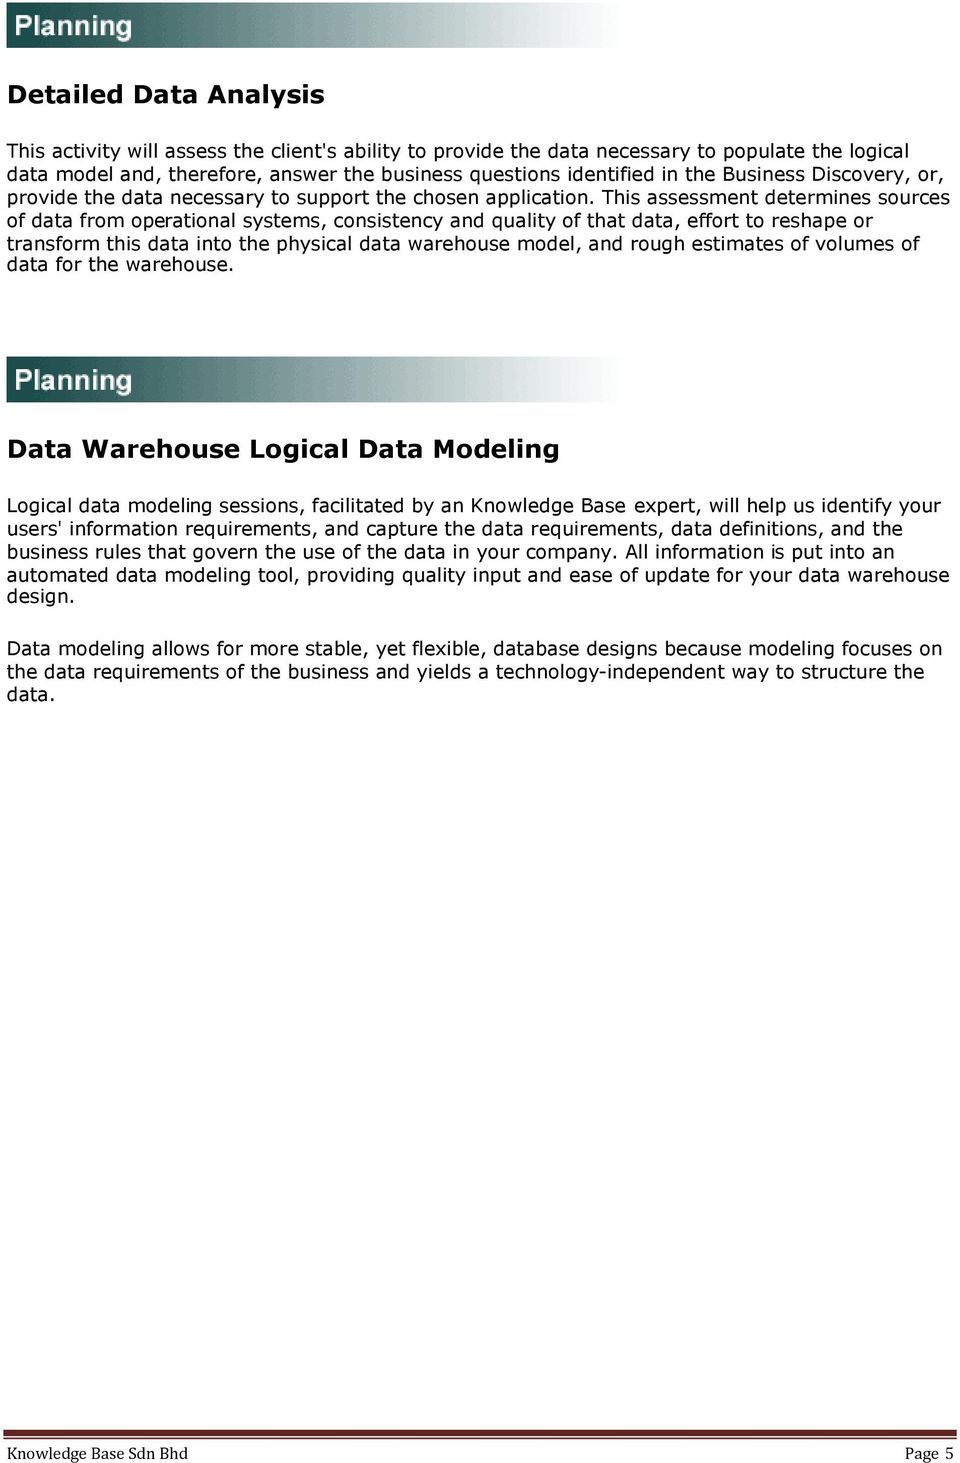 This assessment determines sources of data from operational systems, consistency and quality of that data, effort to reshape or transform this data into the physical data warehouse model, and rough